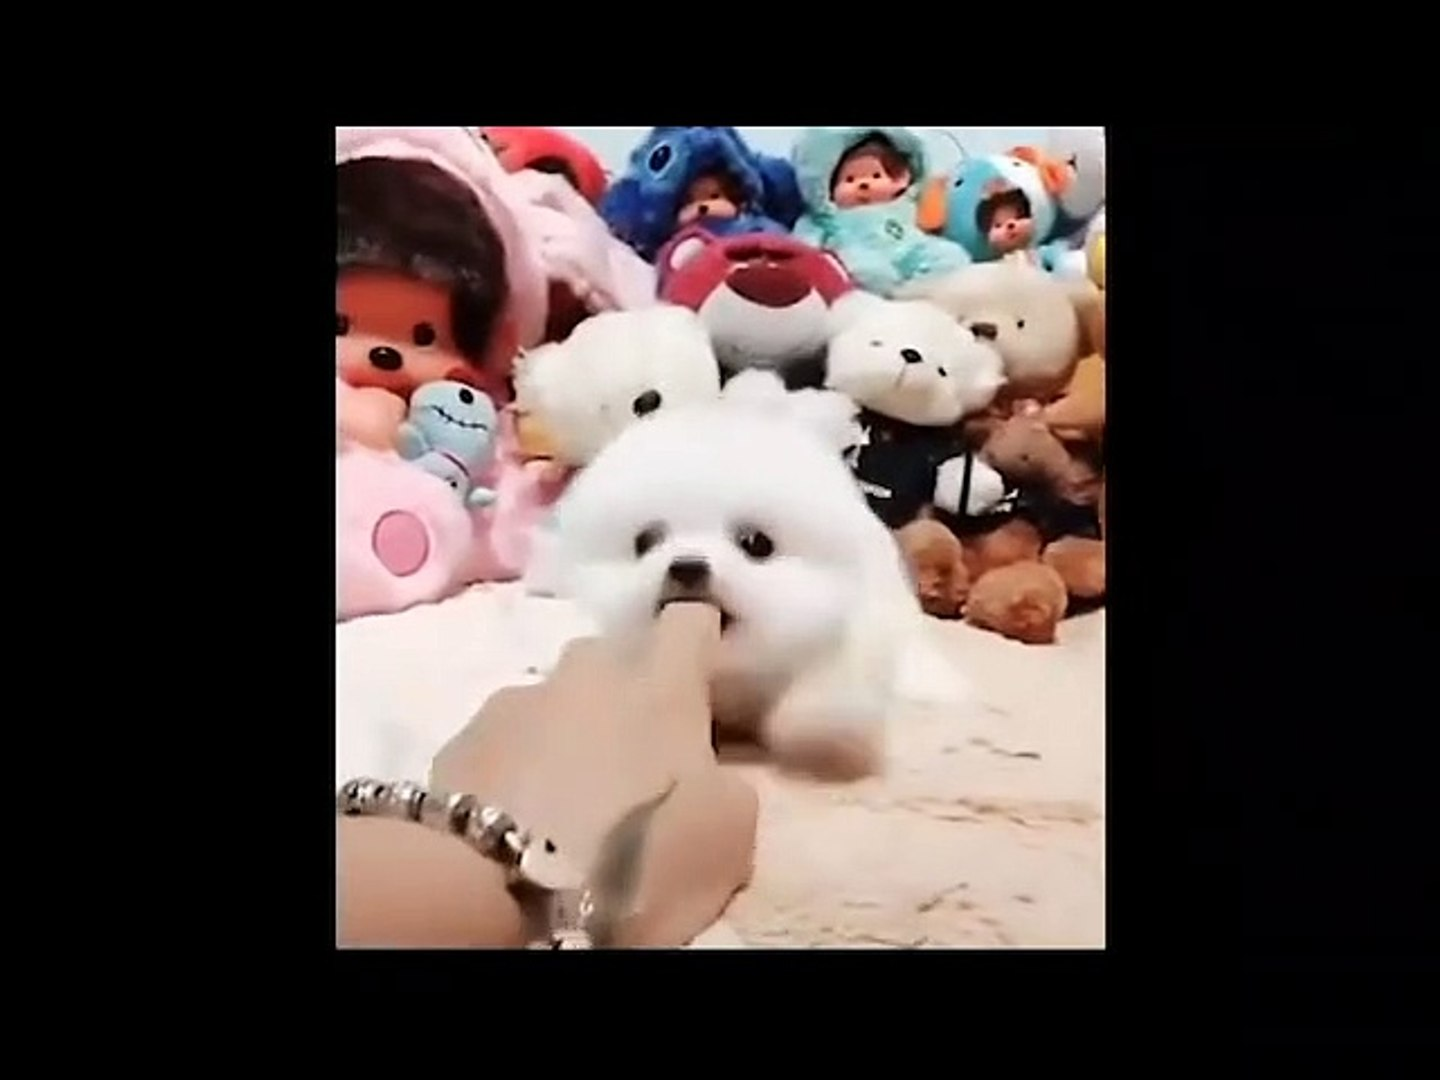 Cute animals Videos Compilation cute moment#6